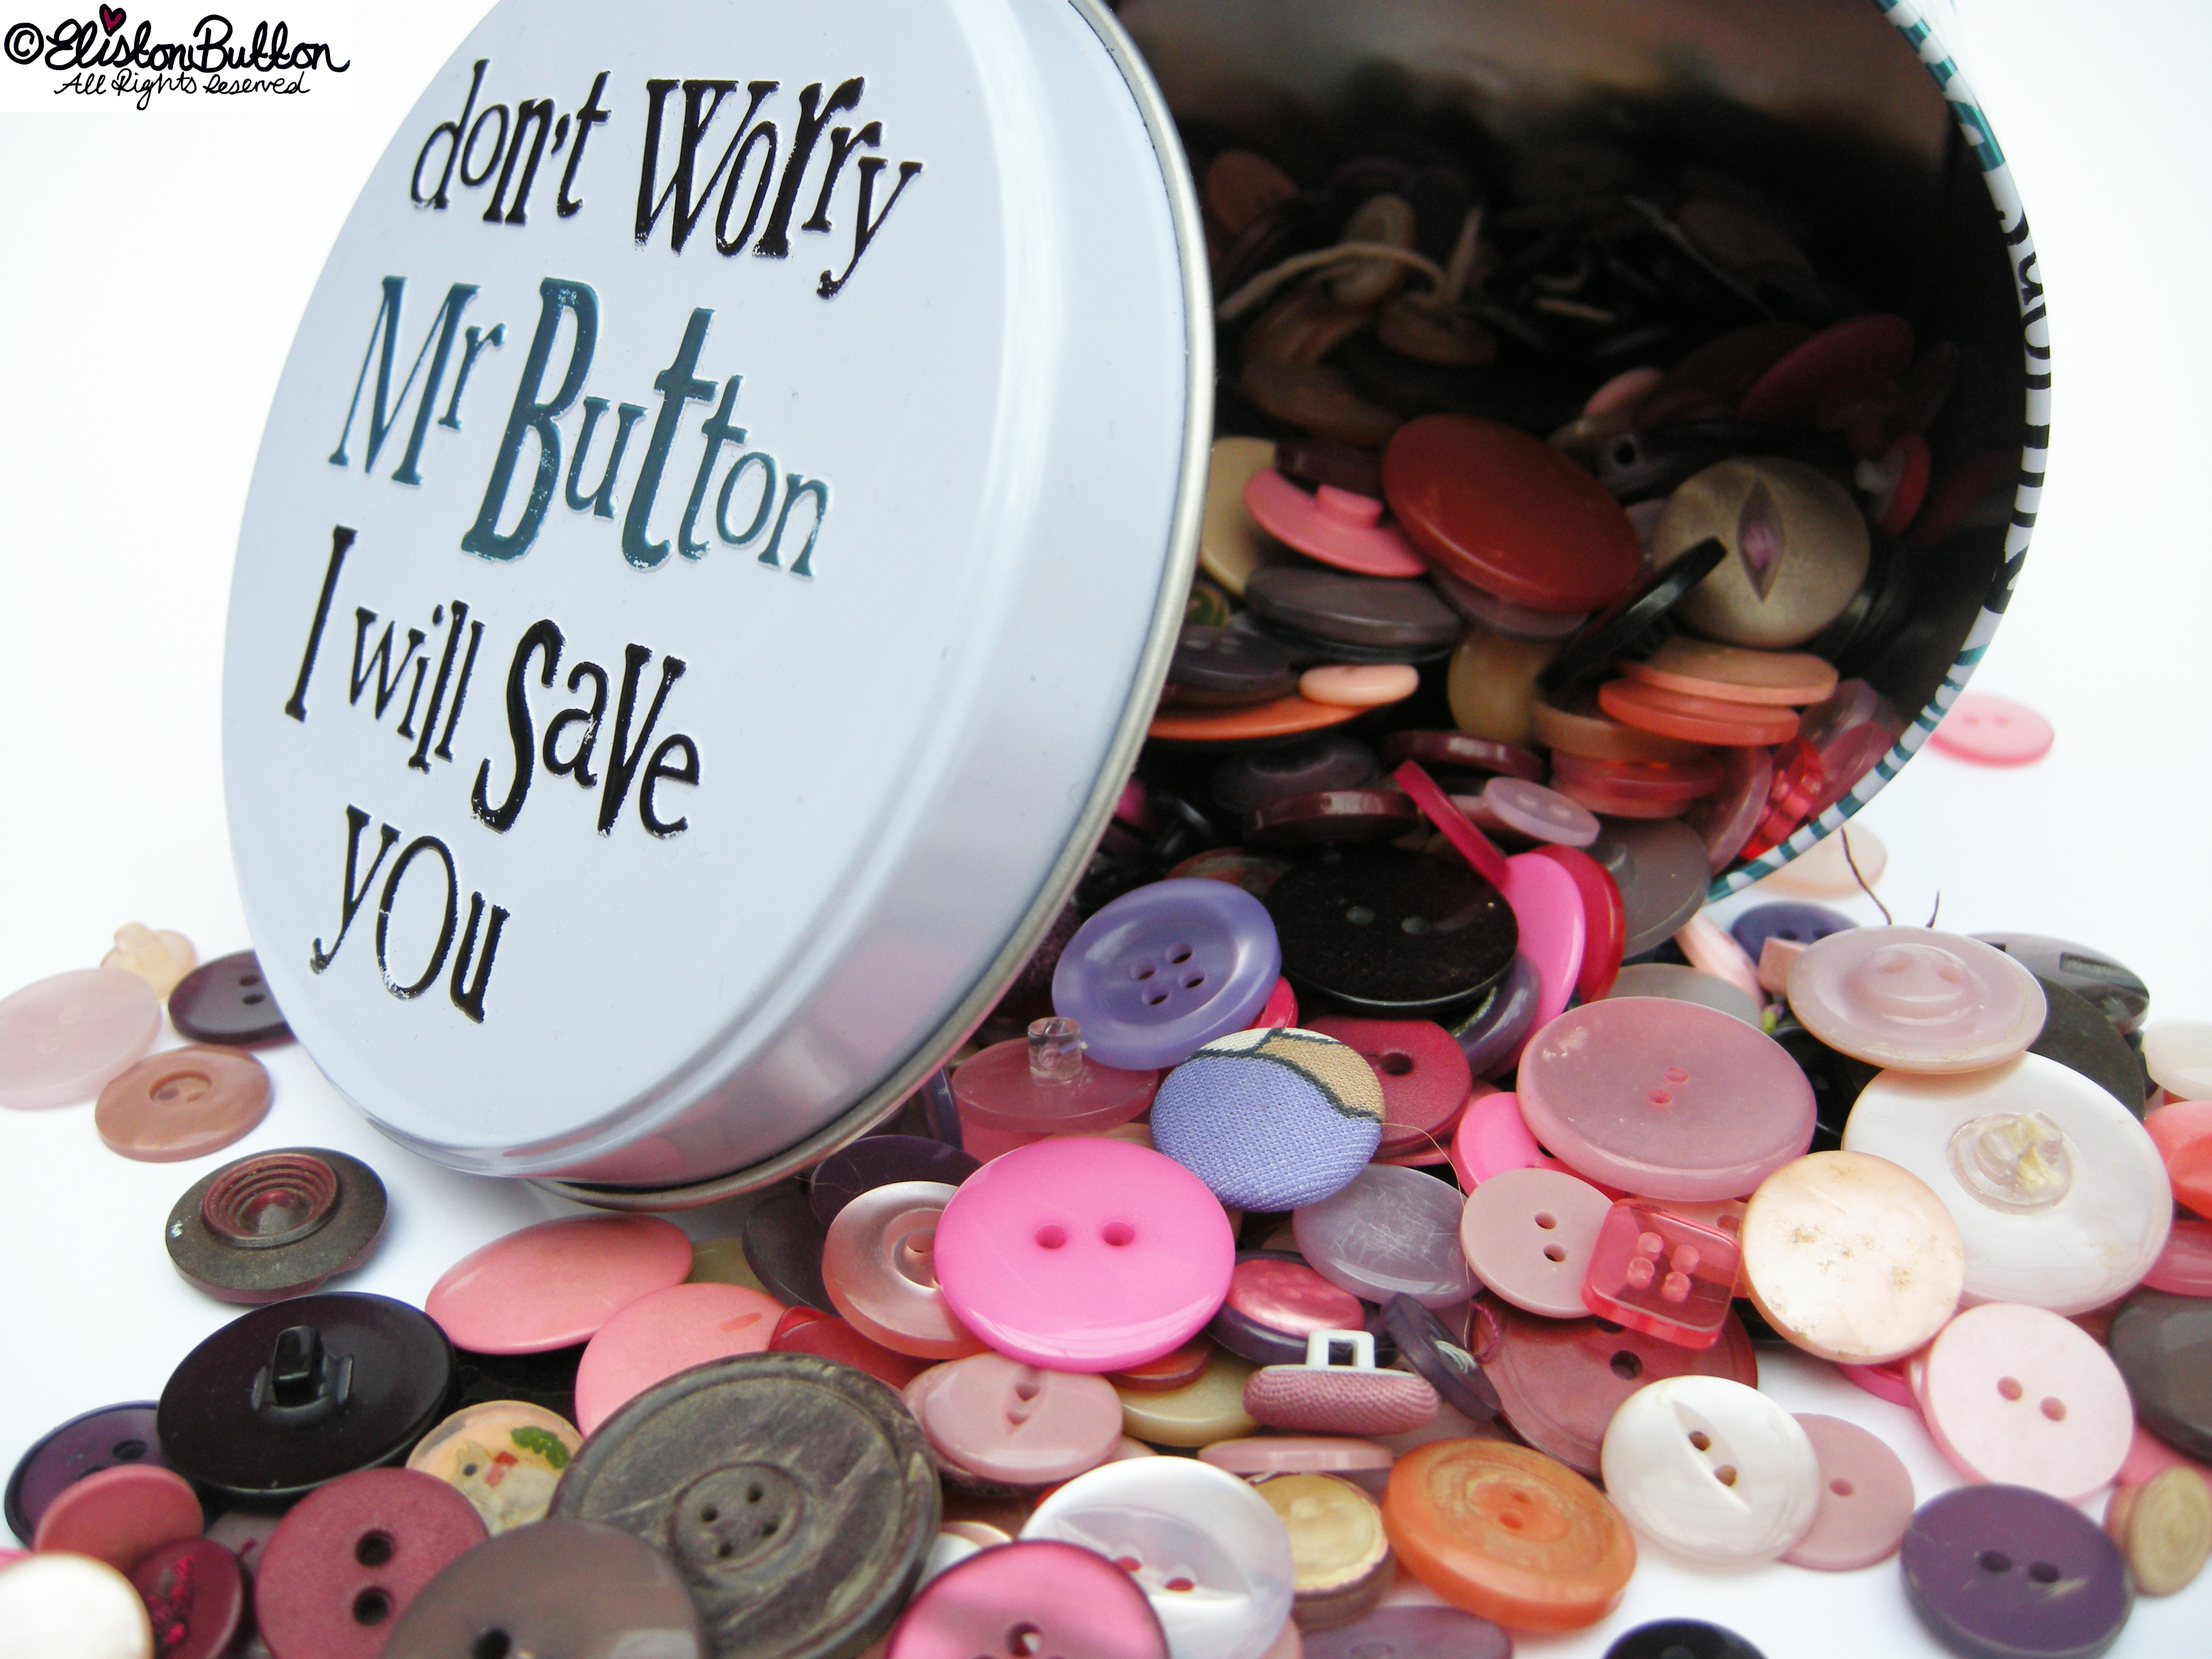 Don't Worry Mr Button I Will Save You Button Tin by The Bright Side - Button Goodness - Don't Worry Mr Button I Will Save You at www.elistonbutton.com - Eliston Button - That Crafty Kid – Art, Design, Craft & Adventure.